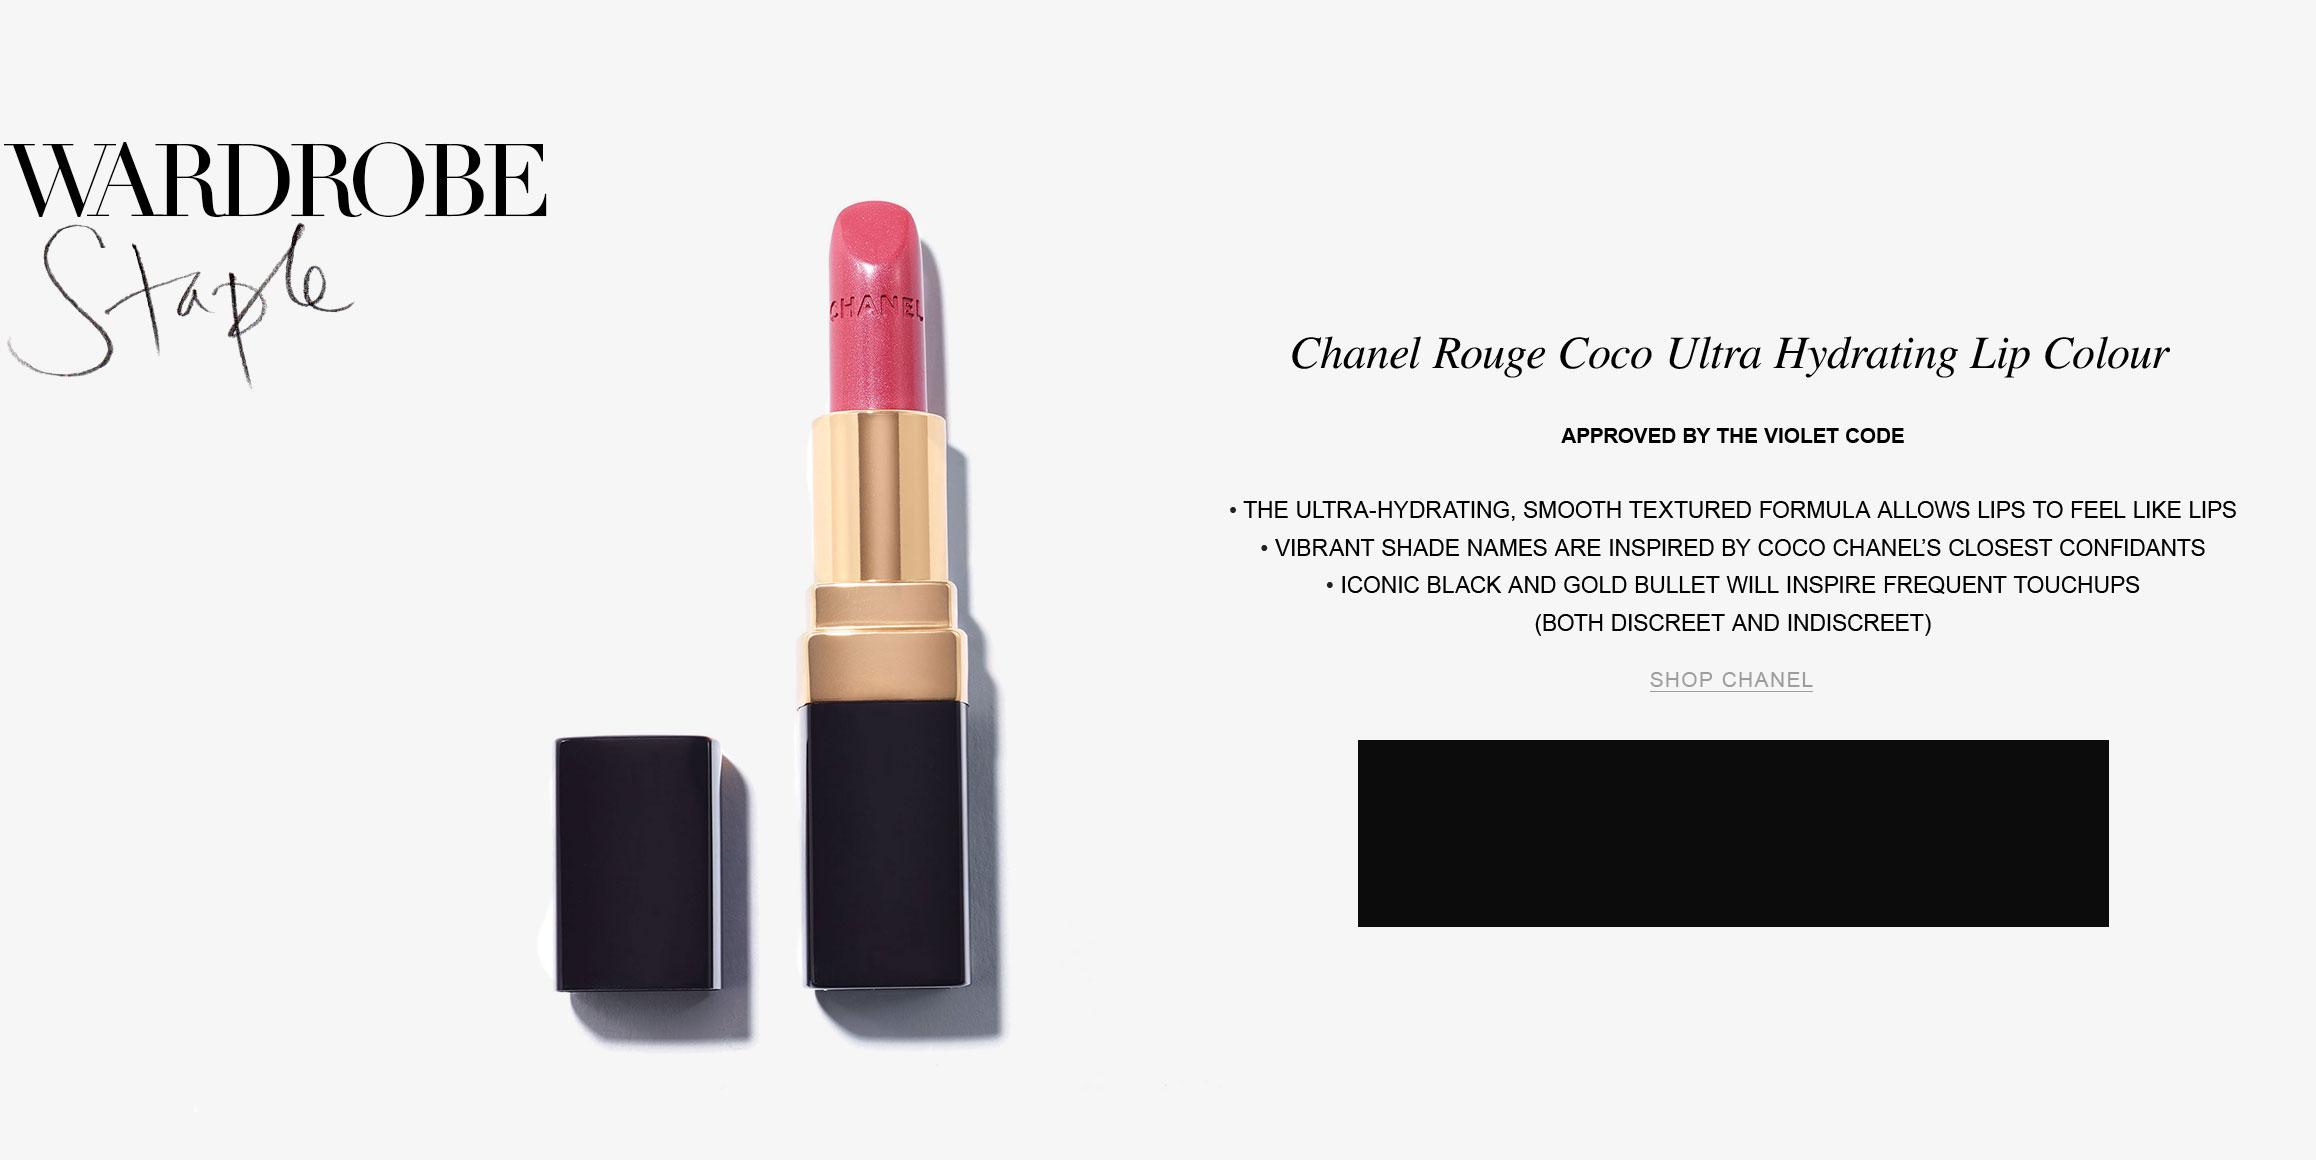 CHANEL-ROUGE-COCO-ULTRA-HYDRATING-LIP-COLOUR-Interstitial.jpg